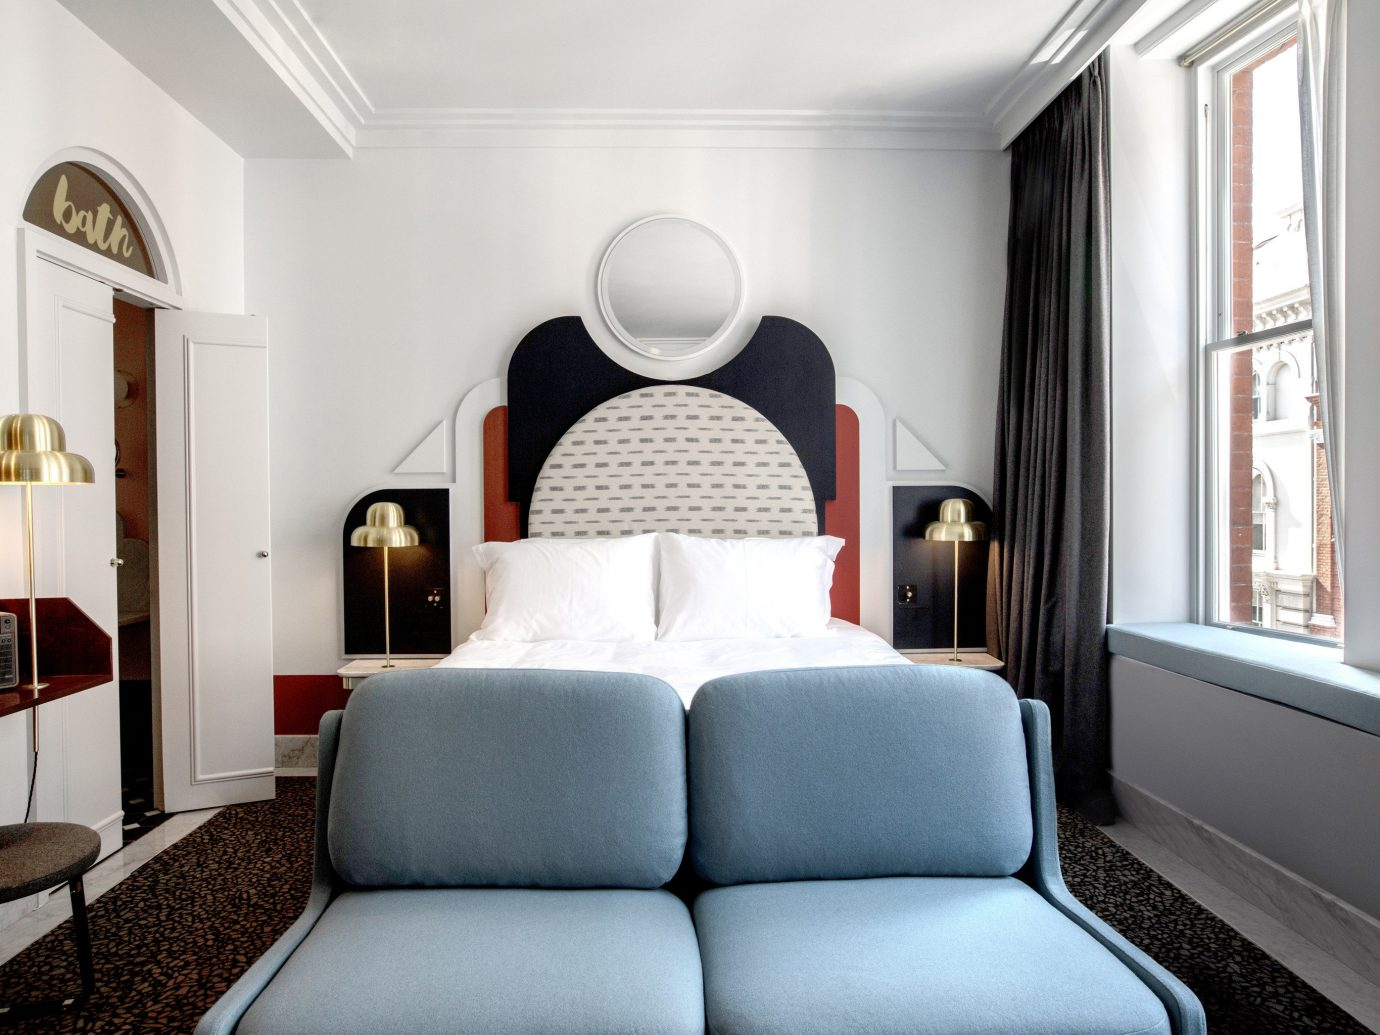 Boutique Hotels Hotels London Romantic Hotels indoor wall sofa room floor Living interior design Suite furniture ceiling Bedroom home interior designer comfort decorated